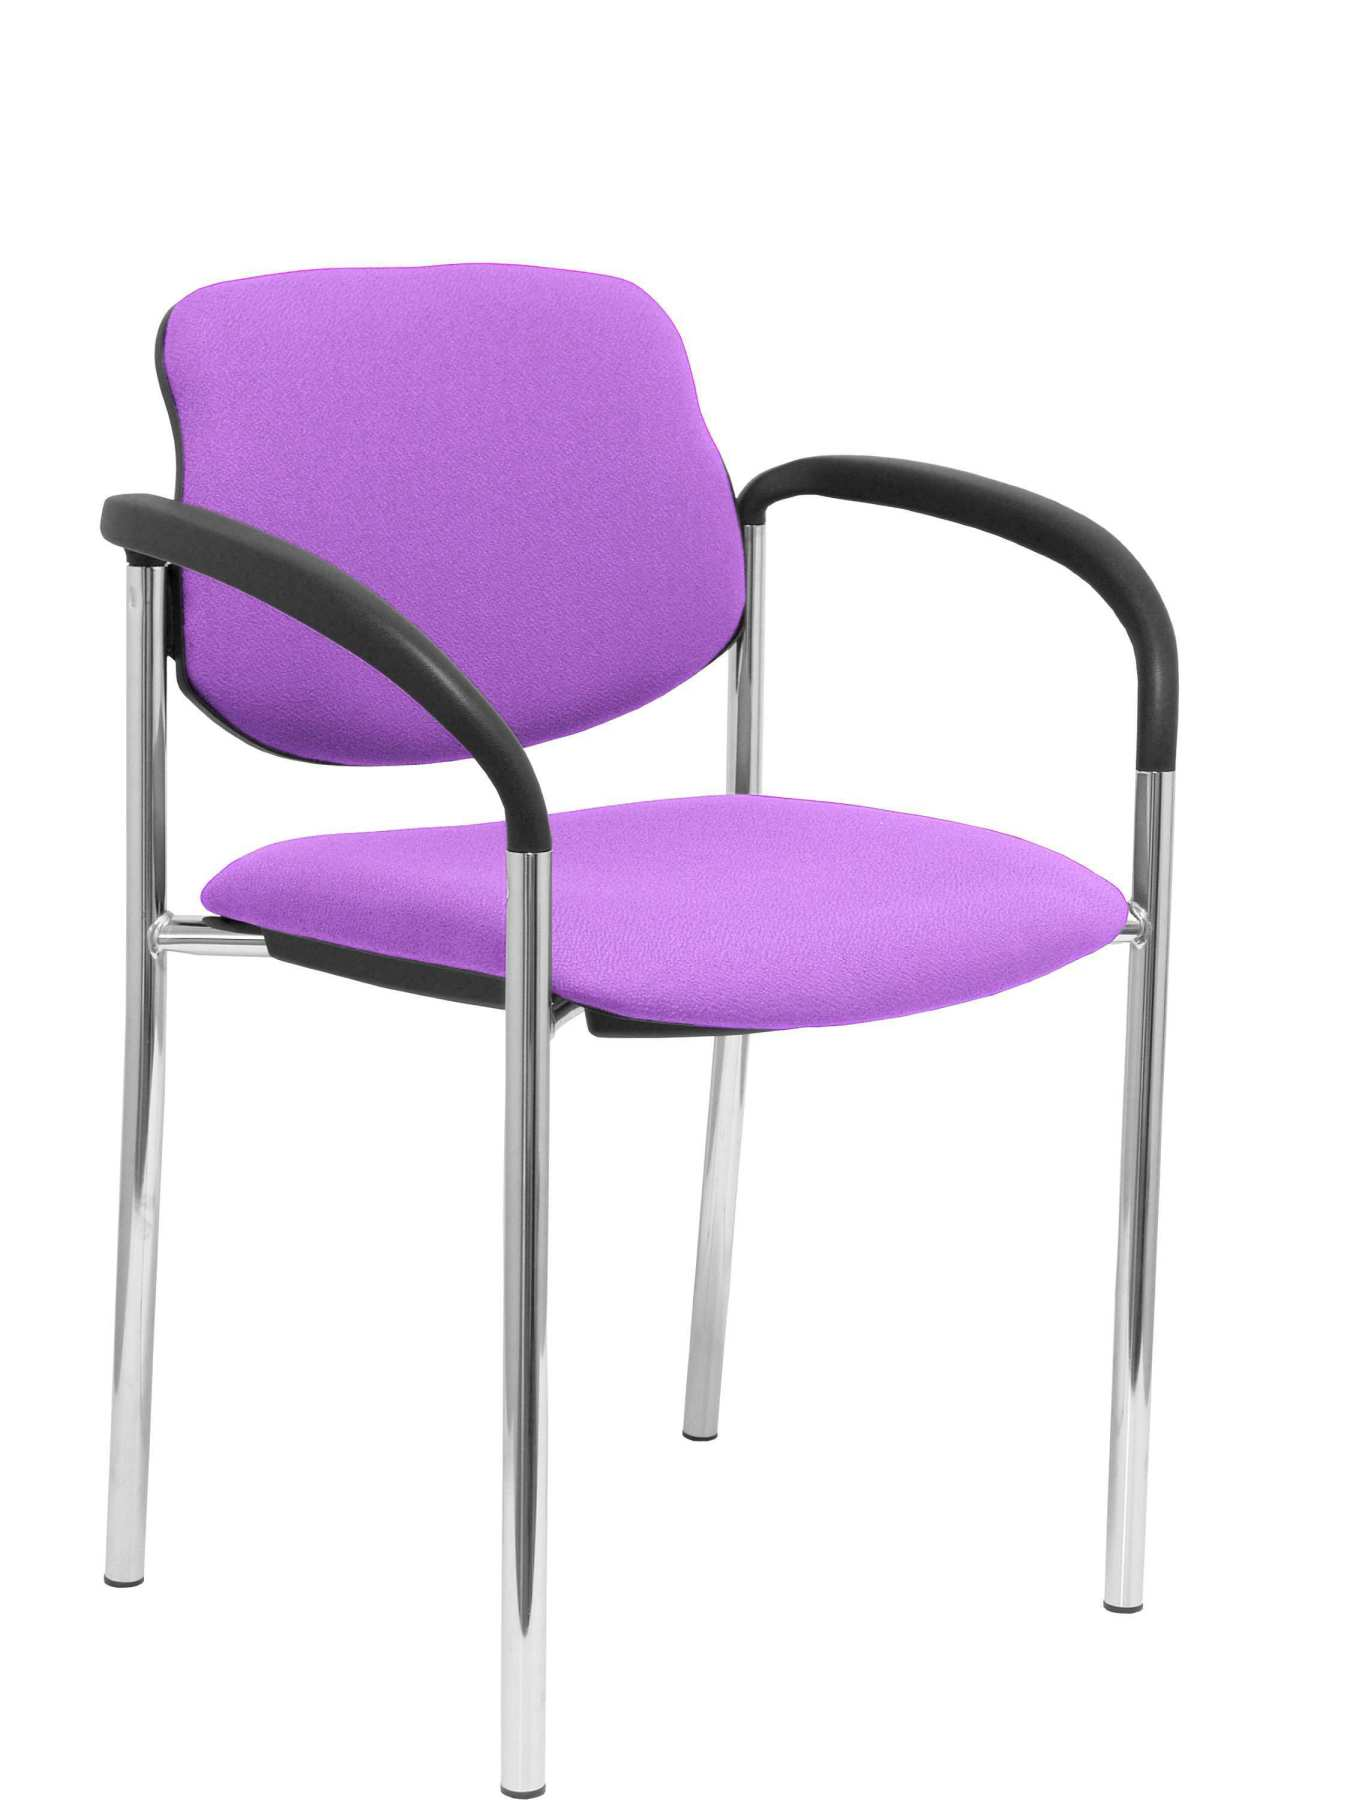 Confident Chair 4-leg And Estructrua Chrome Arms-Seat And Back Upholstered In Fabric BALI Lilac PIQ